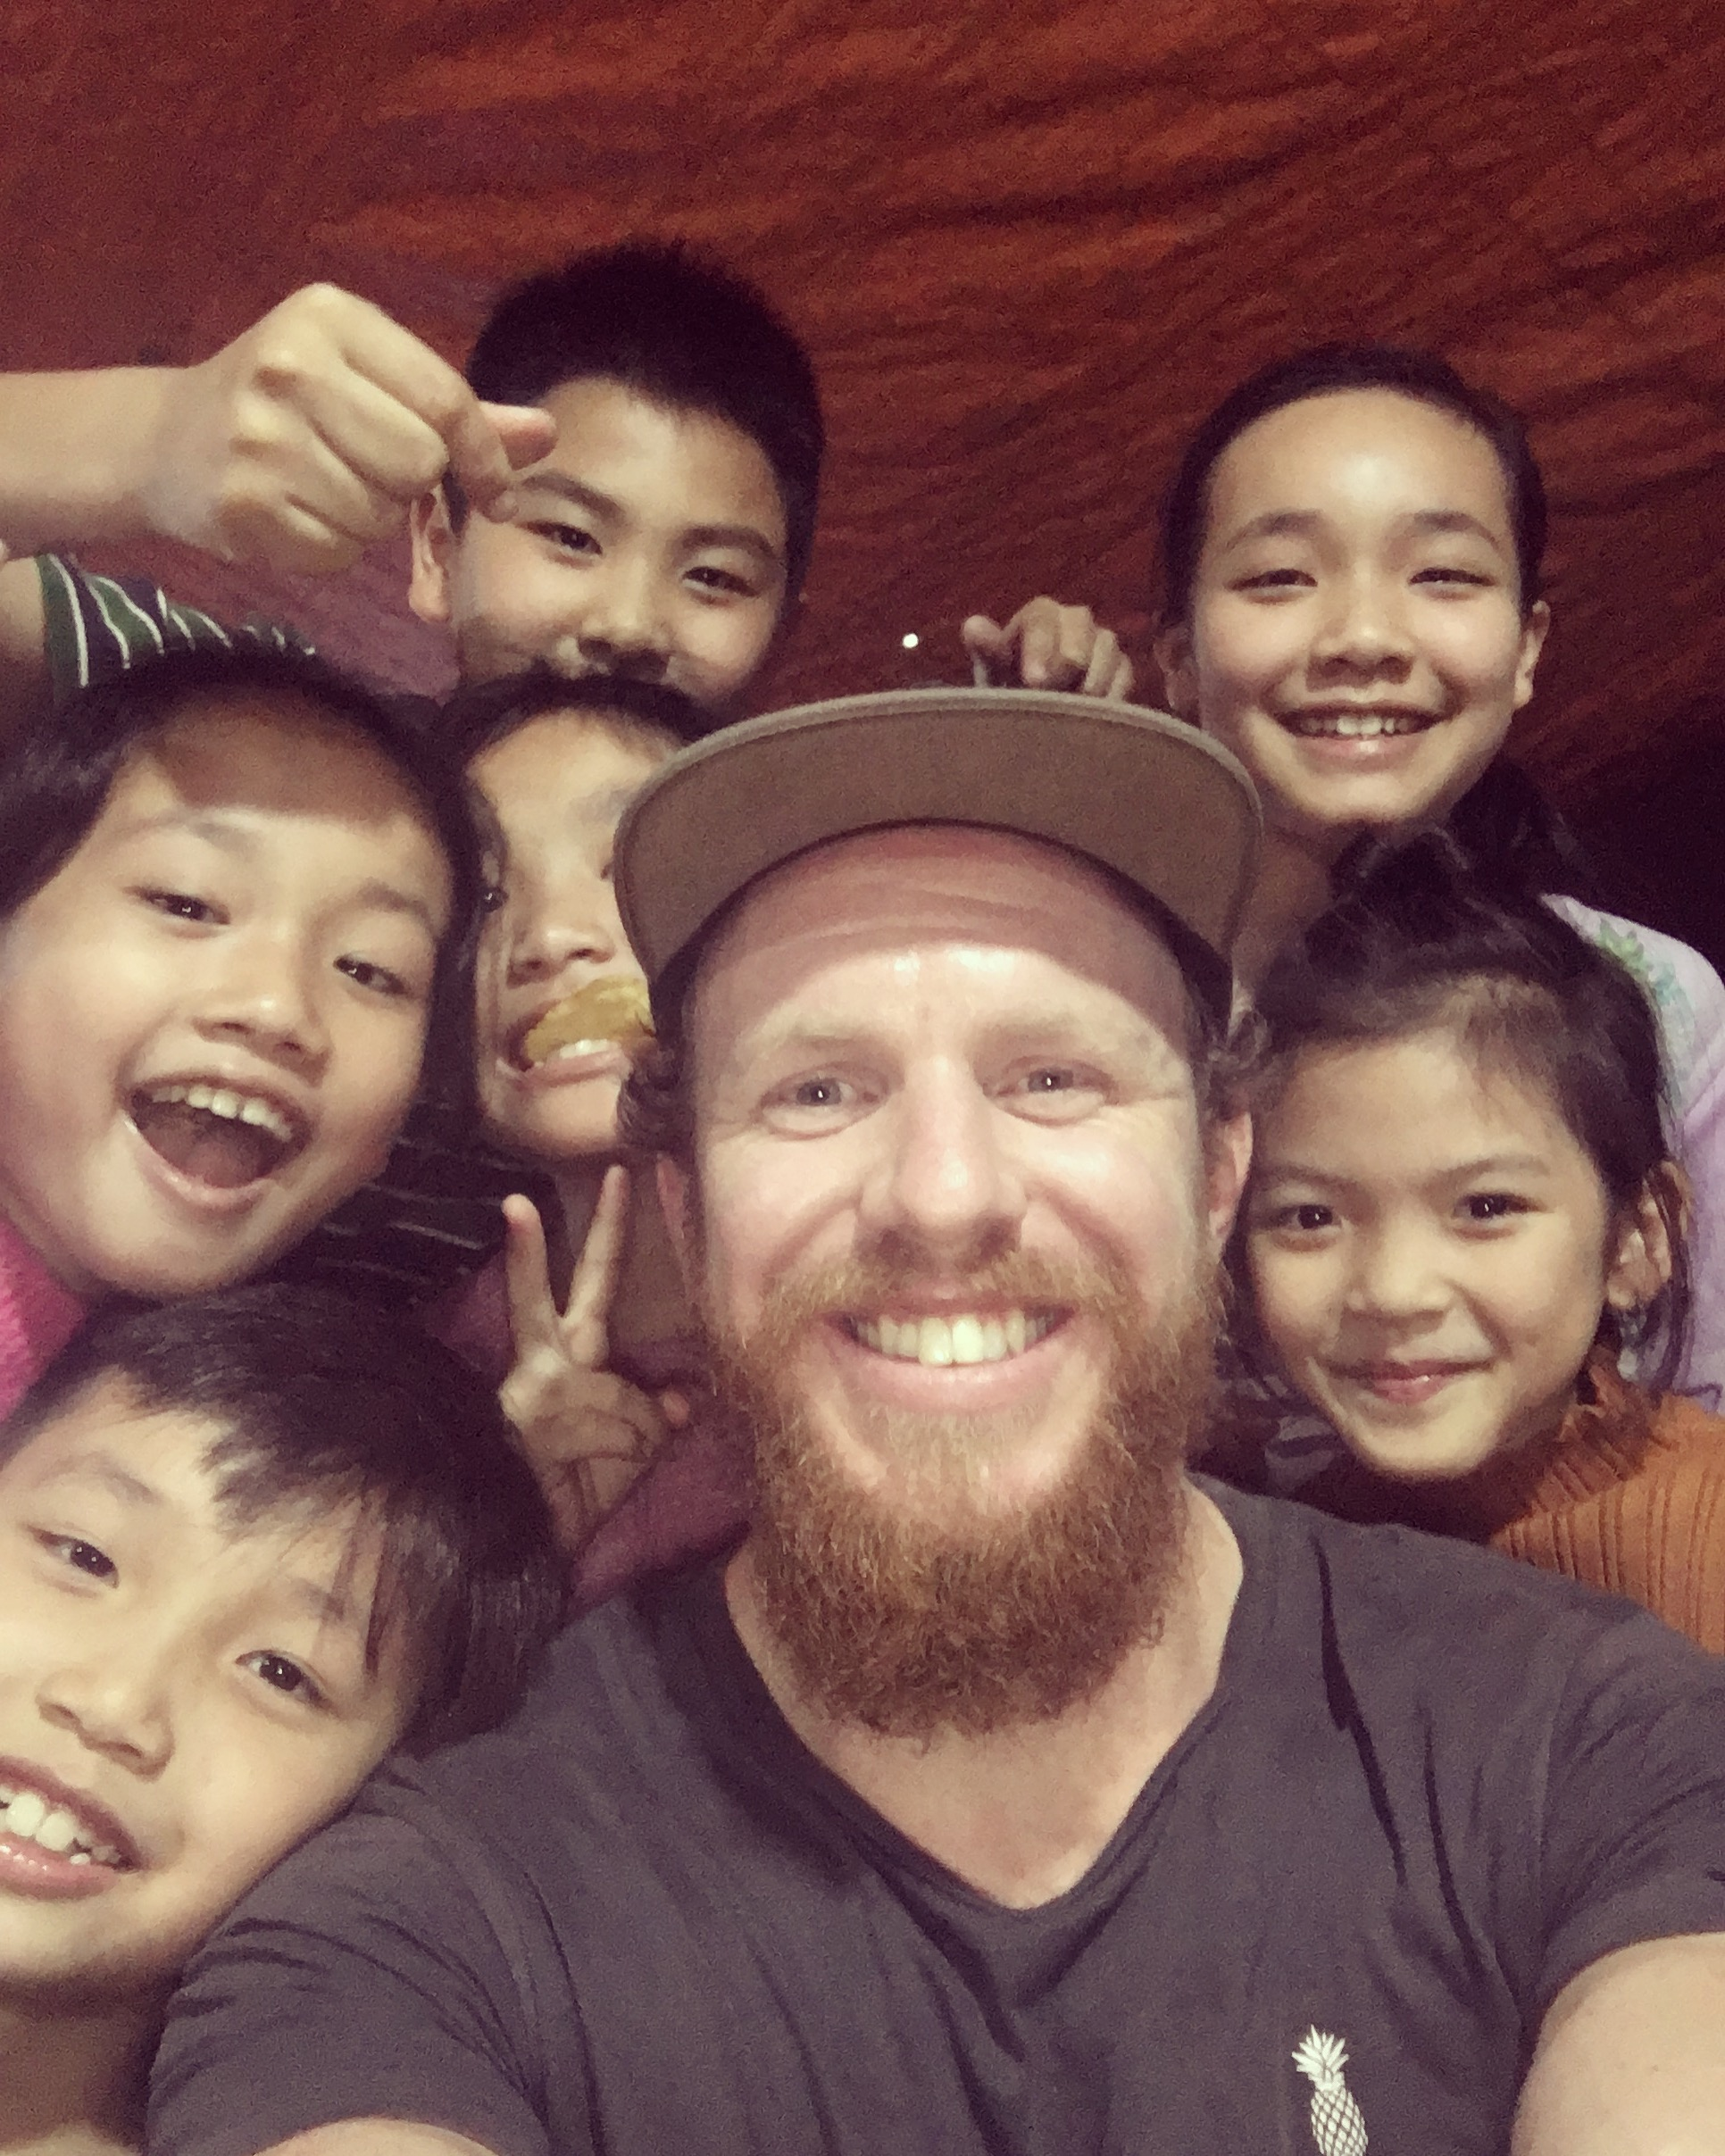 Me with a group of friendly kids celebrating a birthday in Hai Phong.